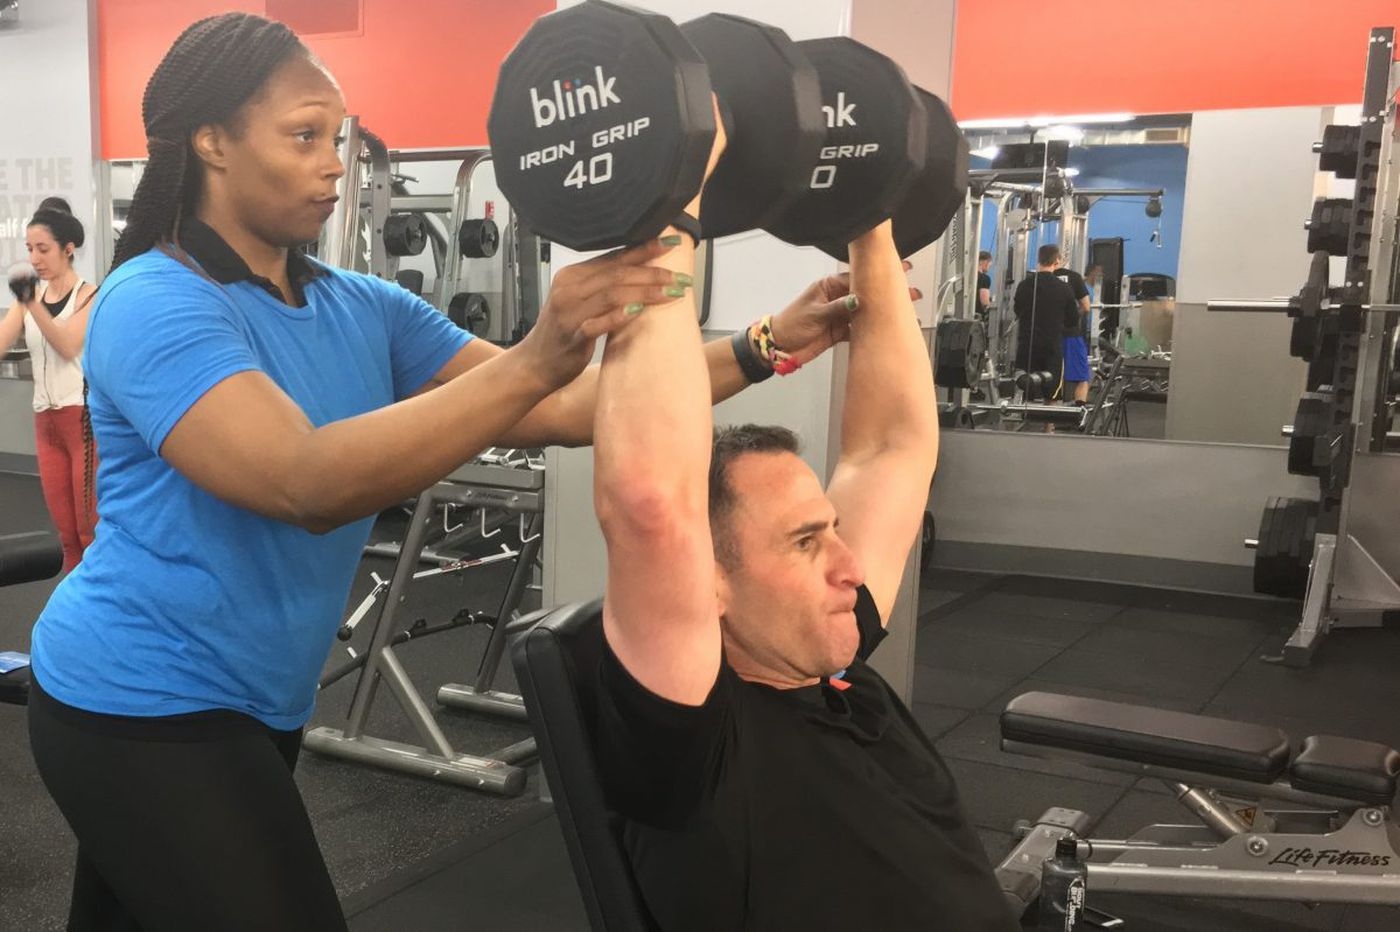 Blink's new gyms in Philly show how fitness is surging